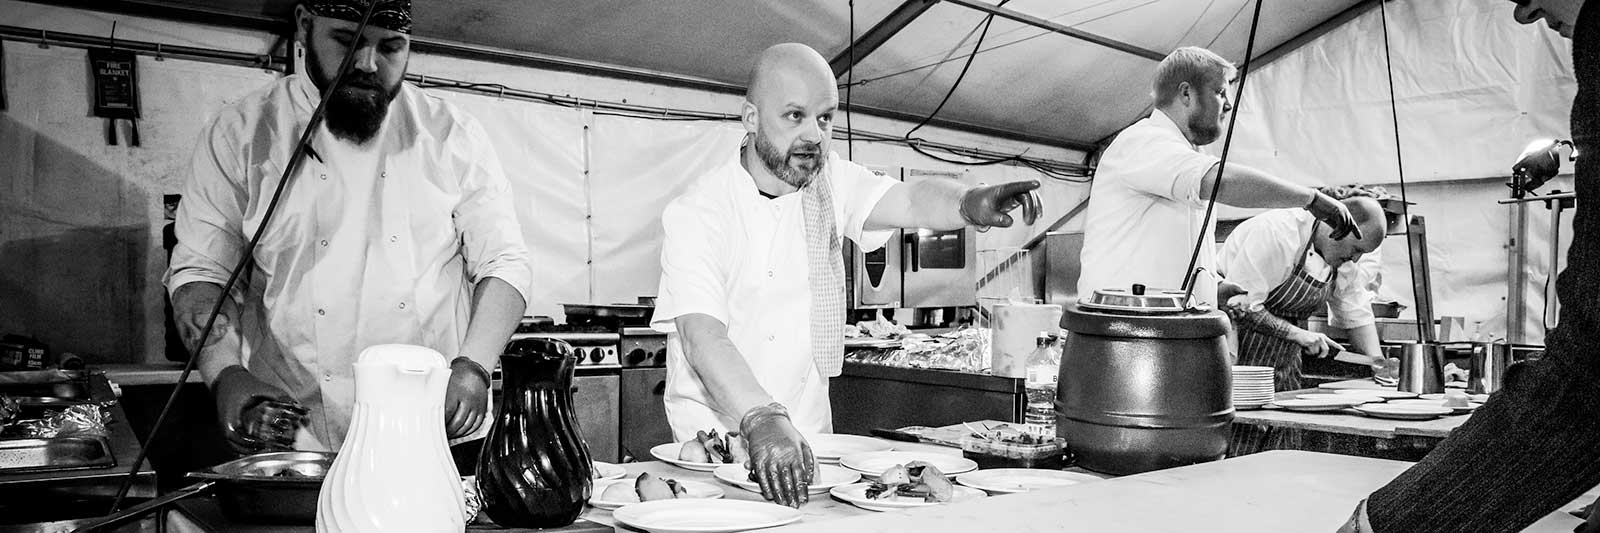 Black and white photo of four chefs working in a marquee kitchen